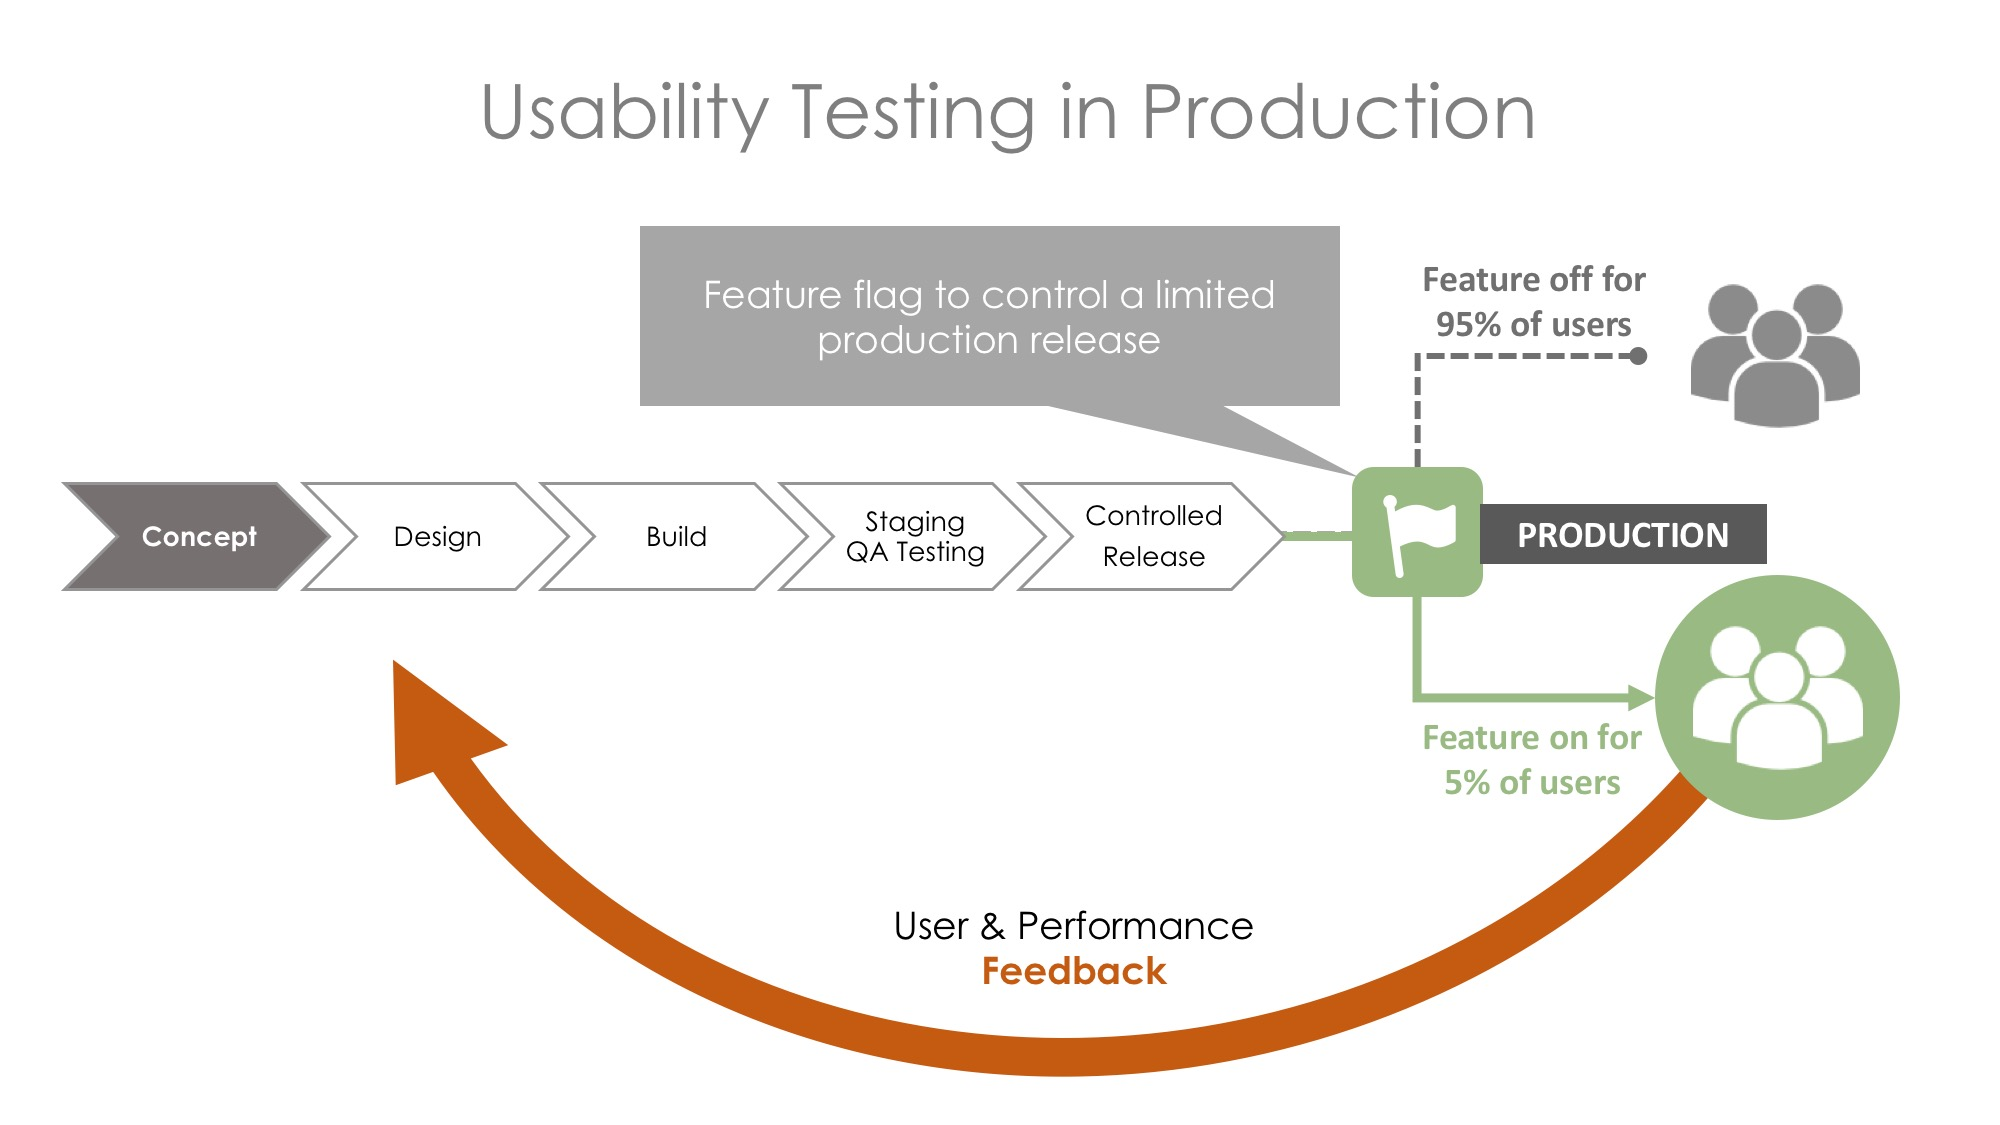 LaunchDarkly Usability Testing in Production - User Feedback